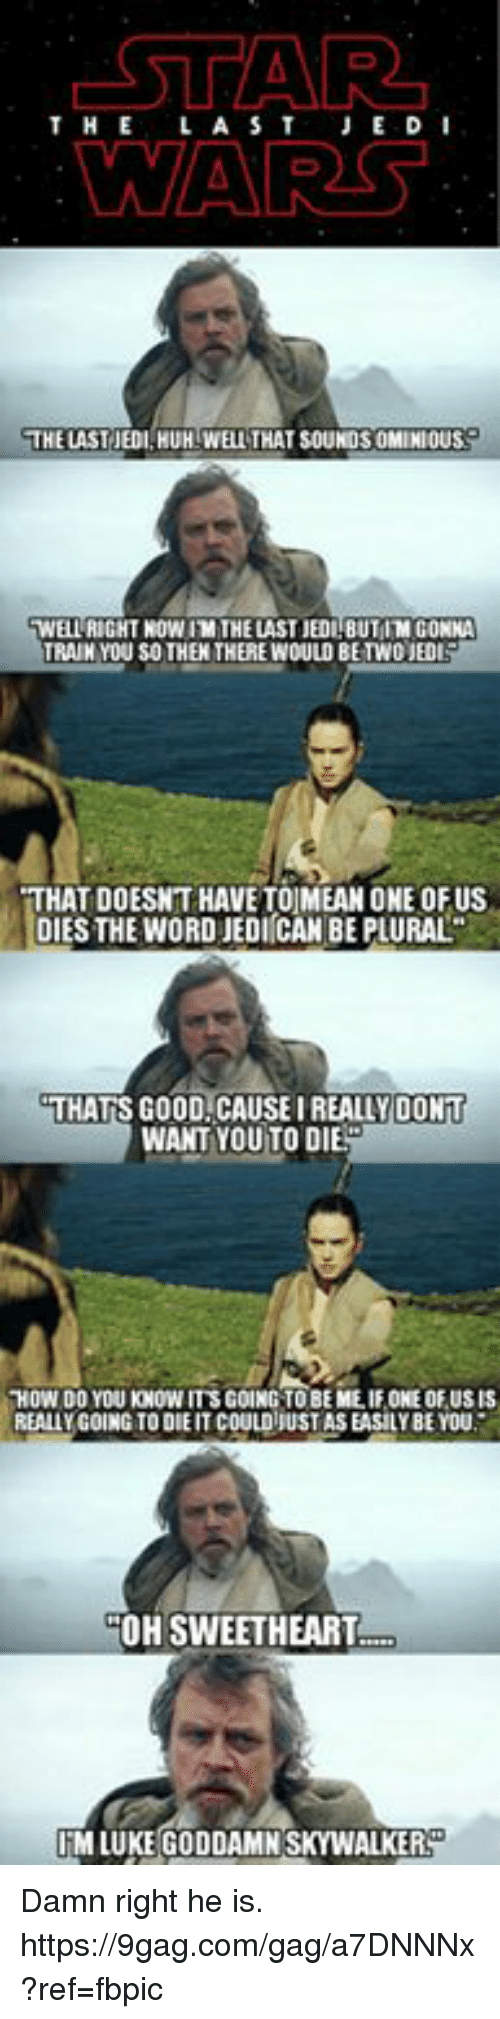 9gag, Dank, and Huh: STAR  WARS  THELAST JE D  THE LAST JEDI,HUH WELL THAT SOUNDS OMINIOUS  WELL RIGHT NOW IM THE LAST HUBUT IM GONNA  TRAIN YOU SOTHEN THERE WOULD BETWO JED  THAT DOESNT HAVE TOJMEAN ONE OFUS  DIES THE WORD JEDI CAN BE PLURAL  THATS GOOD CAUSEI REALLY DONT  WANT YOU TO DIE  0W DO YOU KNOW TS GOING TO BE ME. IF ONE OF.USIS  REALLY GOING TO DIE IT COULD JUST AS EASILY BE YOU  OH SWEETHEART  IM LUKE GODDAMN SKYWALKER Damn right he is. https://9gag.com/gag/a7DNNNx?ref=fbpic